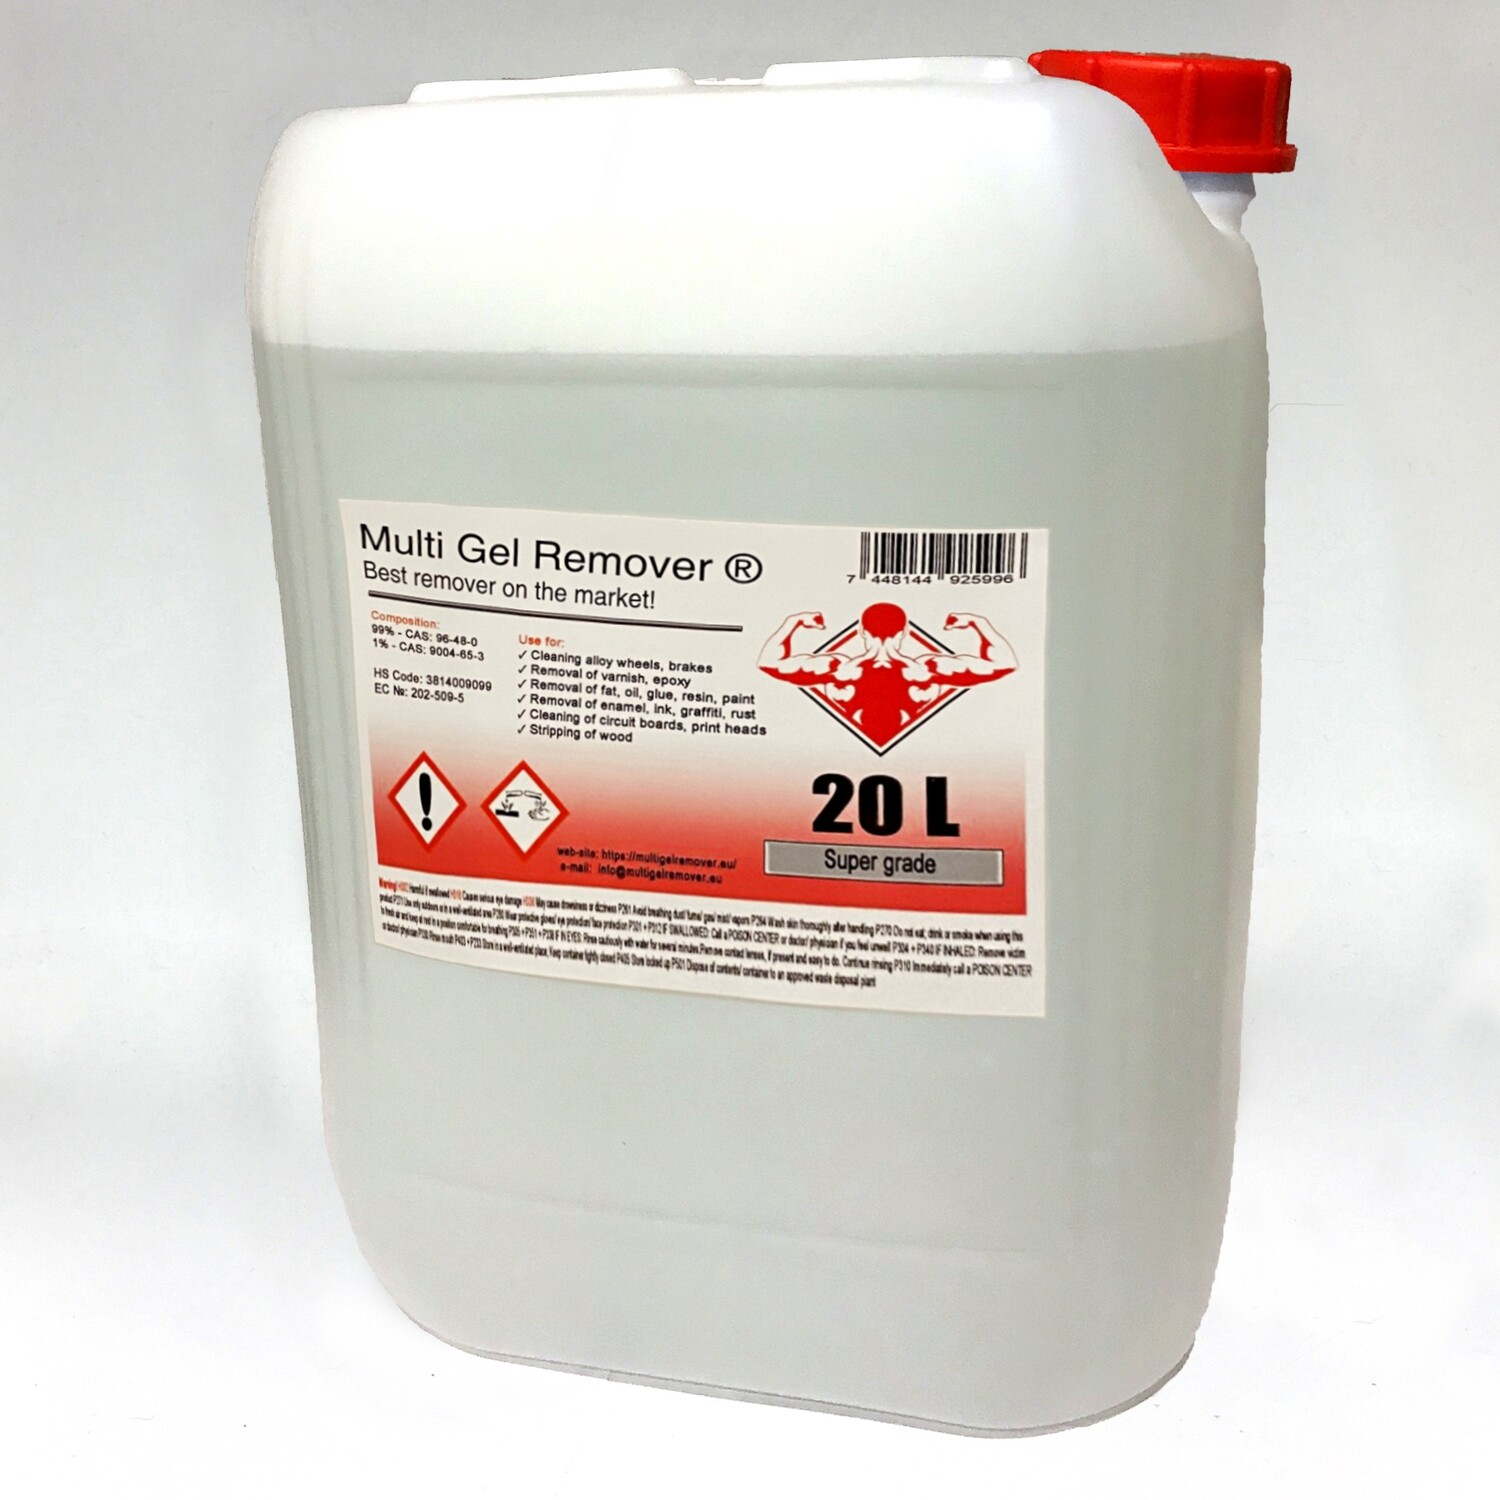 Multi Gel Remover® 20.000 ml Canister +1x 250ml Multi Gel Remover® for FREE